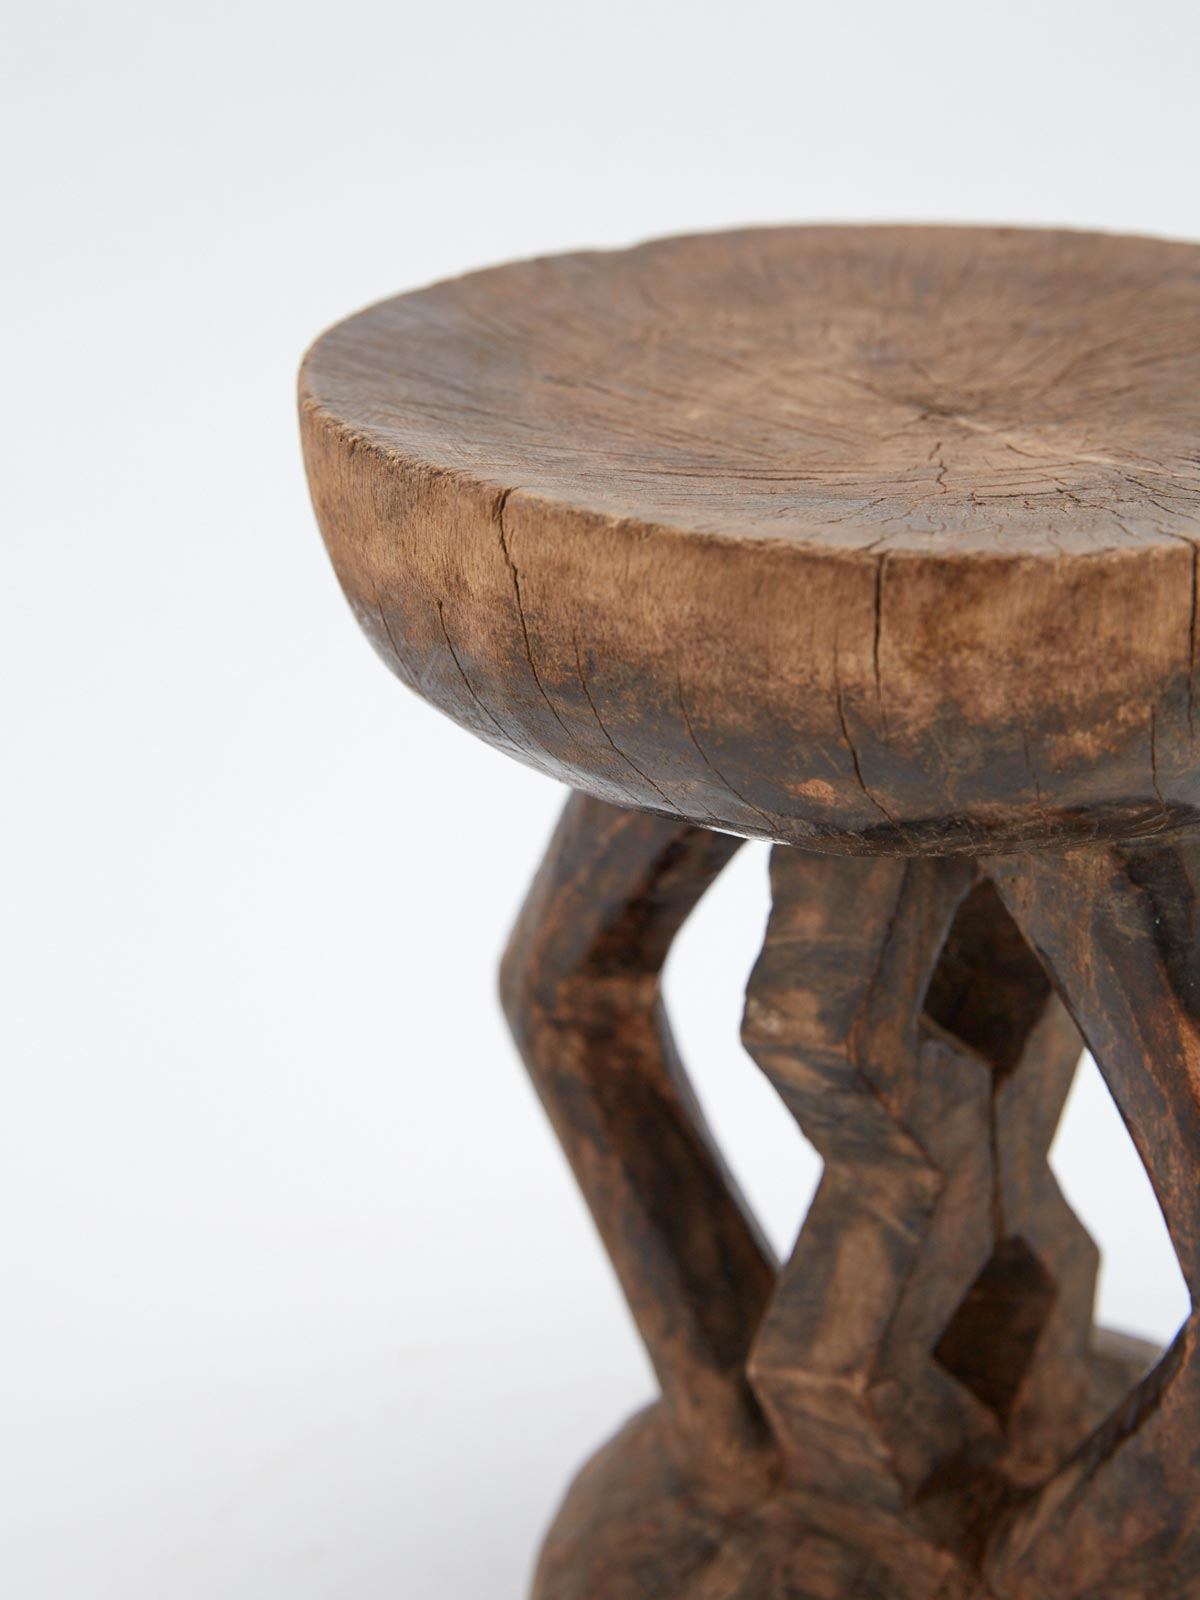 TONGA STOOL - Celestial - CELESTIAL - Sourced from artists in Europe, Asia and Africa, these limited edition pieces inspire a life of simplicity and style.